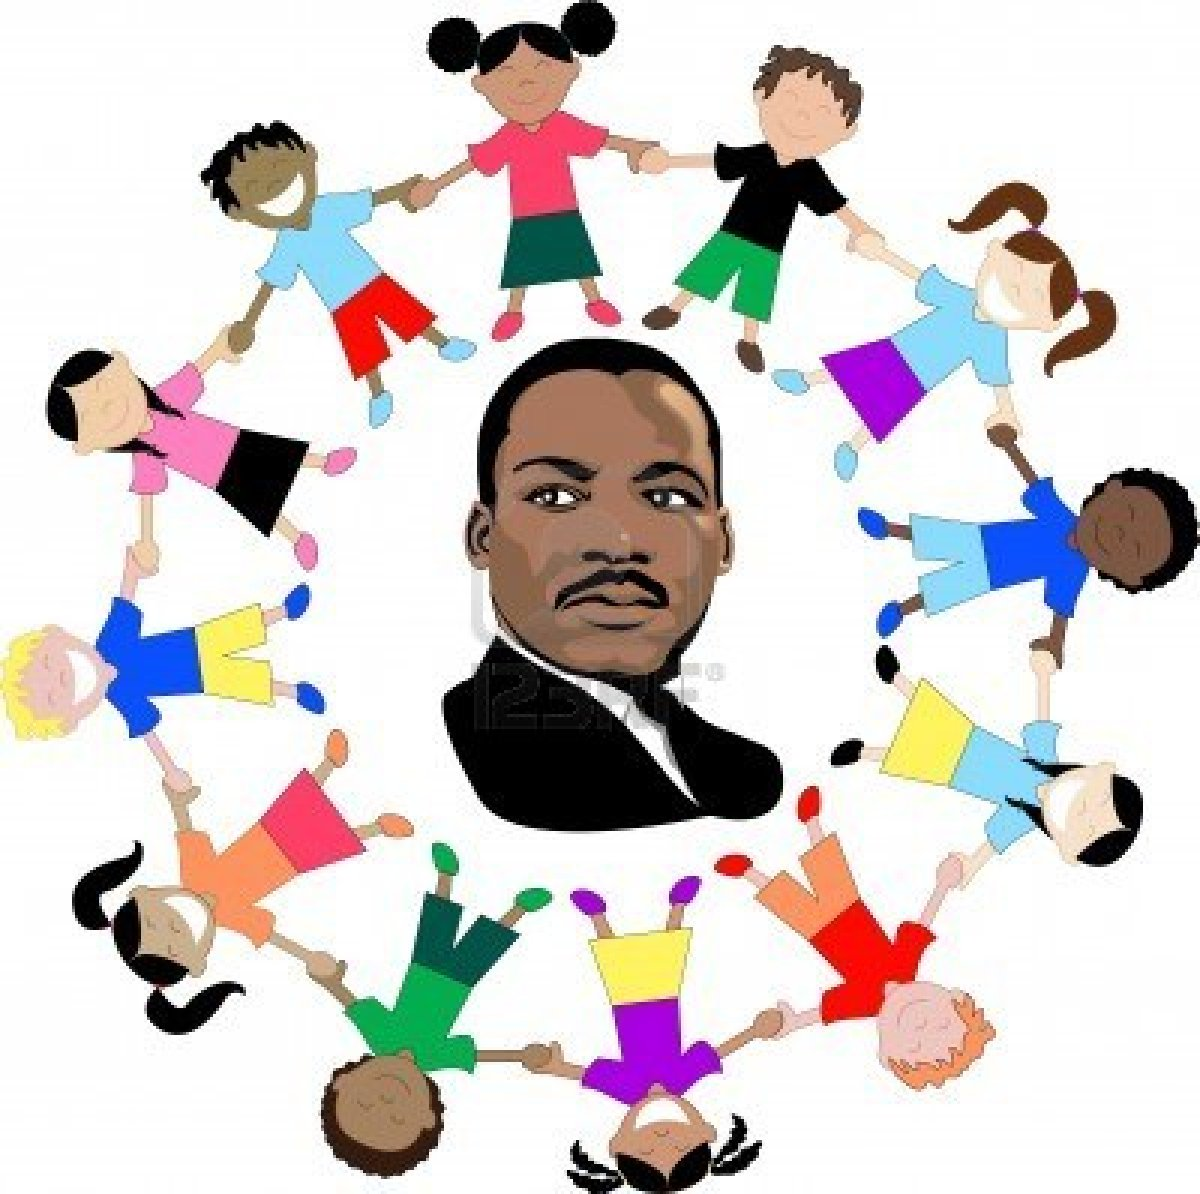 Martin Luther King clipart Martin Luther King Jr Silhouette Printable Panda %20Jr Martin%20Luther%20King King